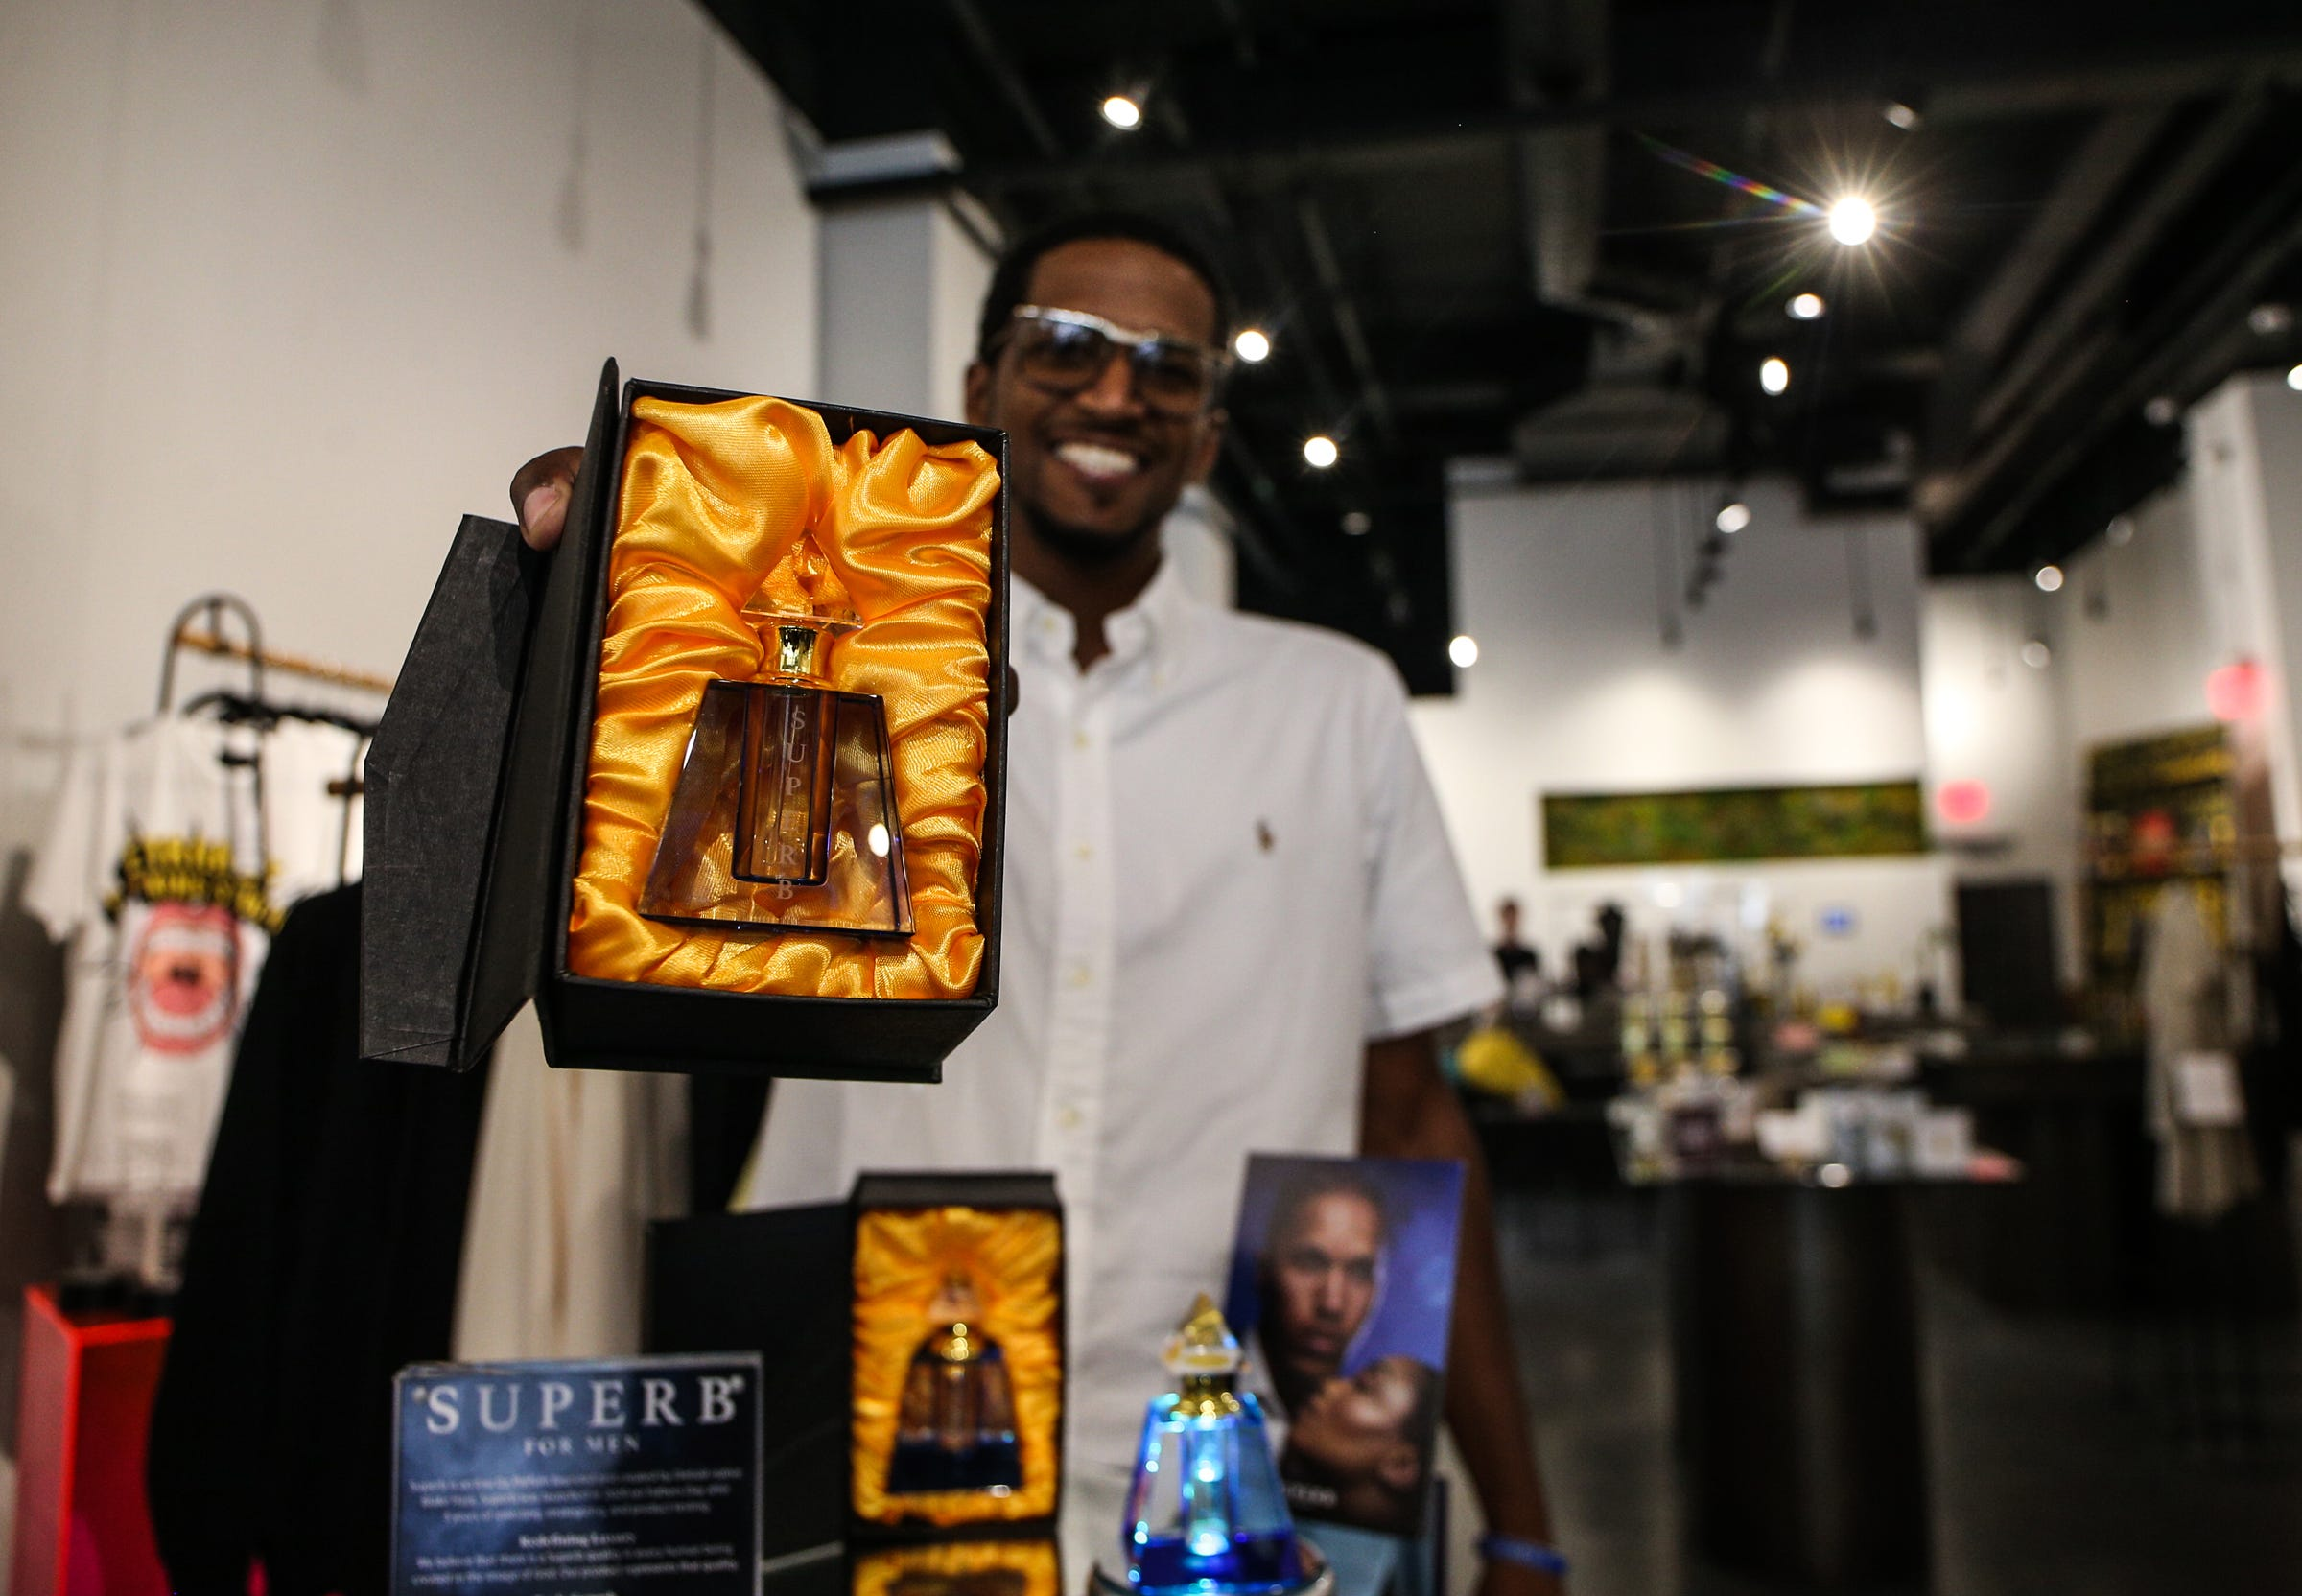 Blake Hare of Superb For Men in the Detroit is the New Black. store in Detroit on July 14, 2021. Superb is a Black owned, Detroit-based cologne that was launched in 2020 on Father's Day.